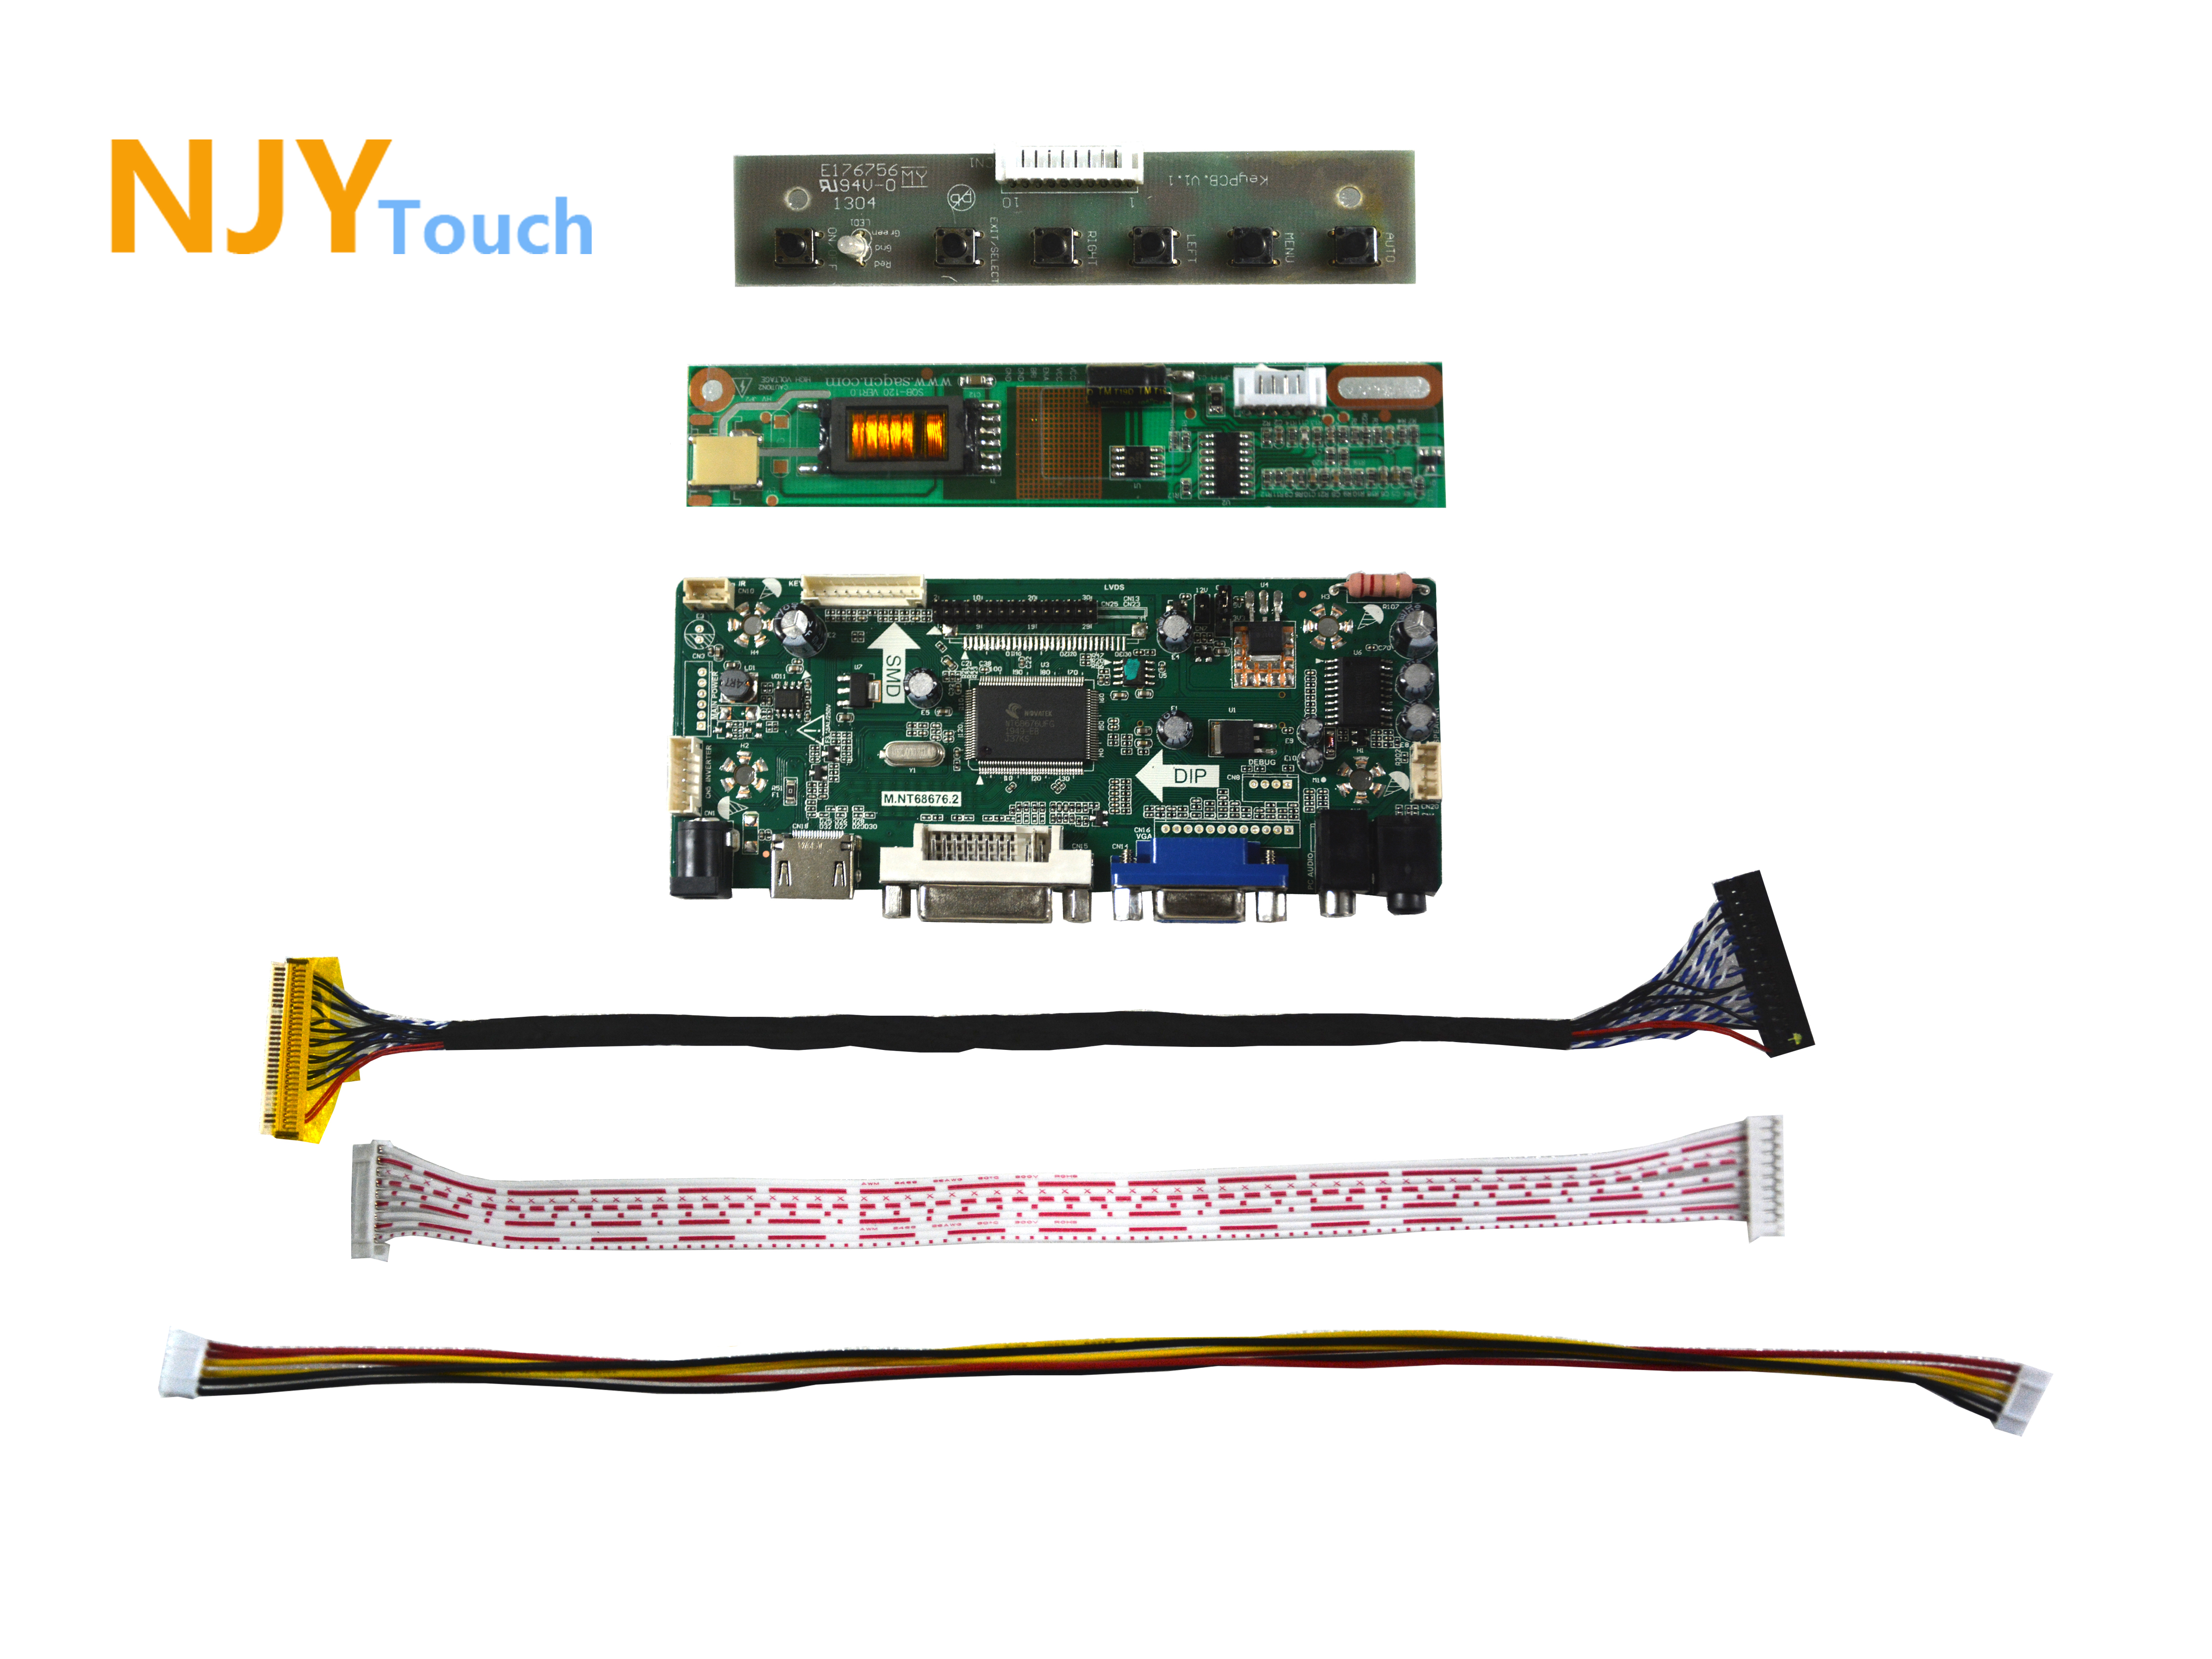 NJYTouch M.NT68676.2A HDMI VGA DVI Controller Board For 15.4inch N154C1-L01 N154C5-L01 1440x900 LCD Screen